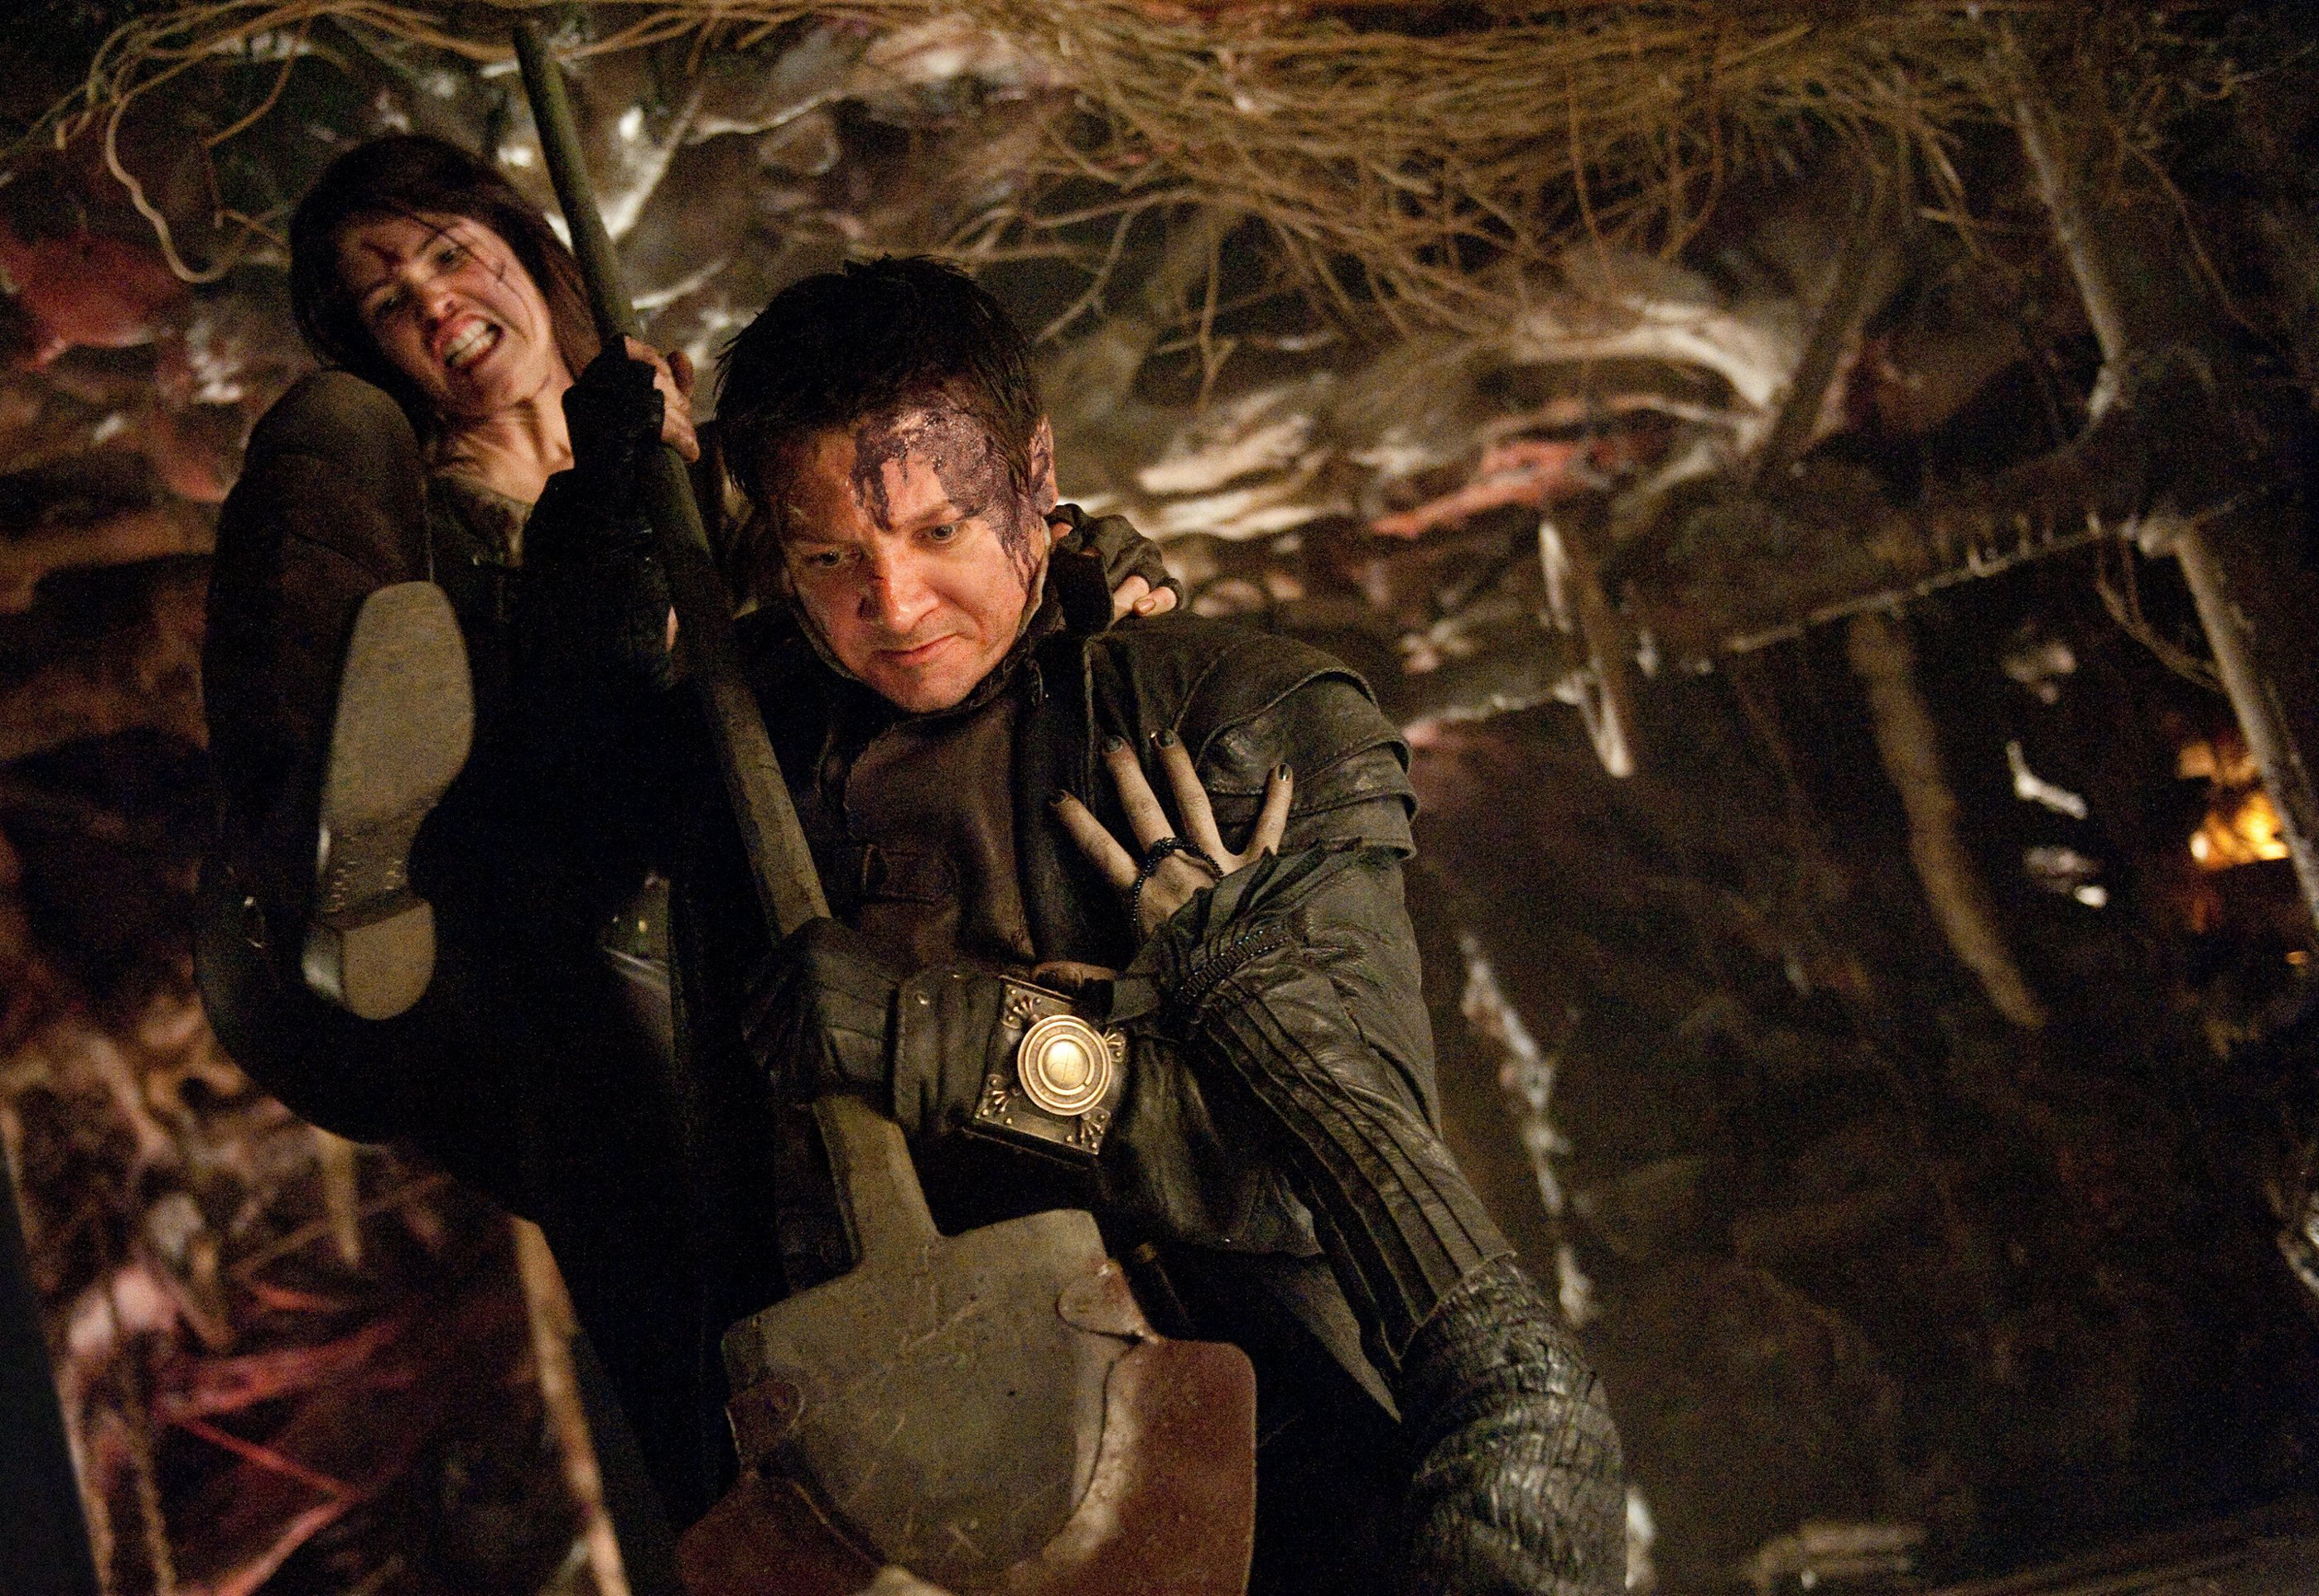 Photo du film Hansel & Gretel : Witch Hunters avec Gemma Arterton et Jeremy Renner